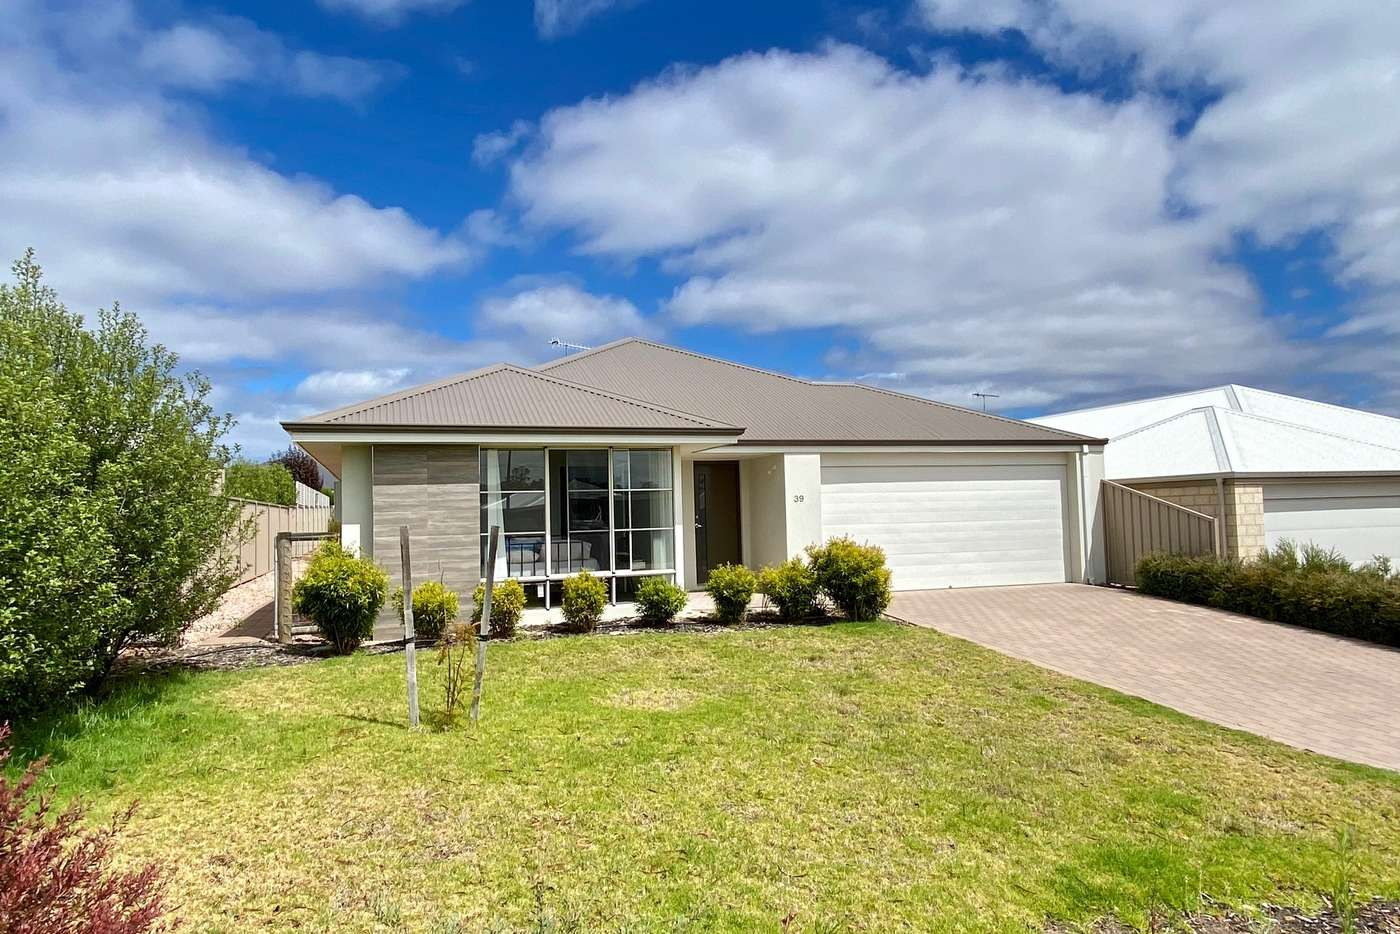 Main view of Homely house listing, 39 Leschenaultia Avenue, Margaret River WA 6285